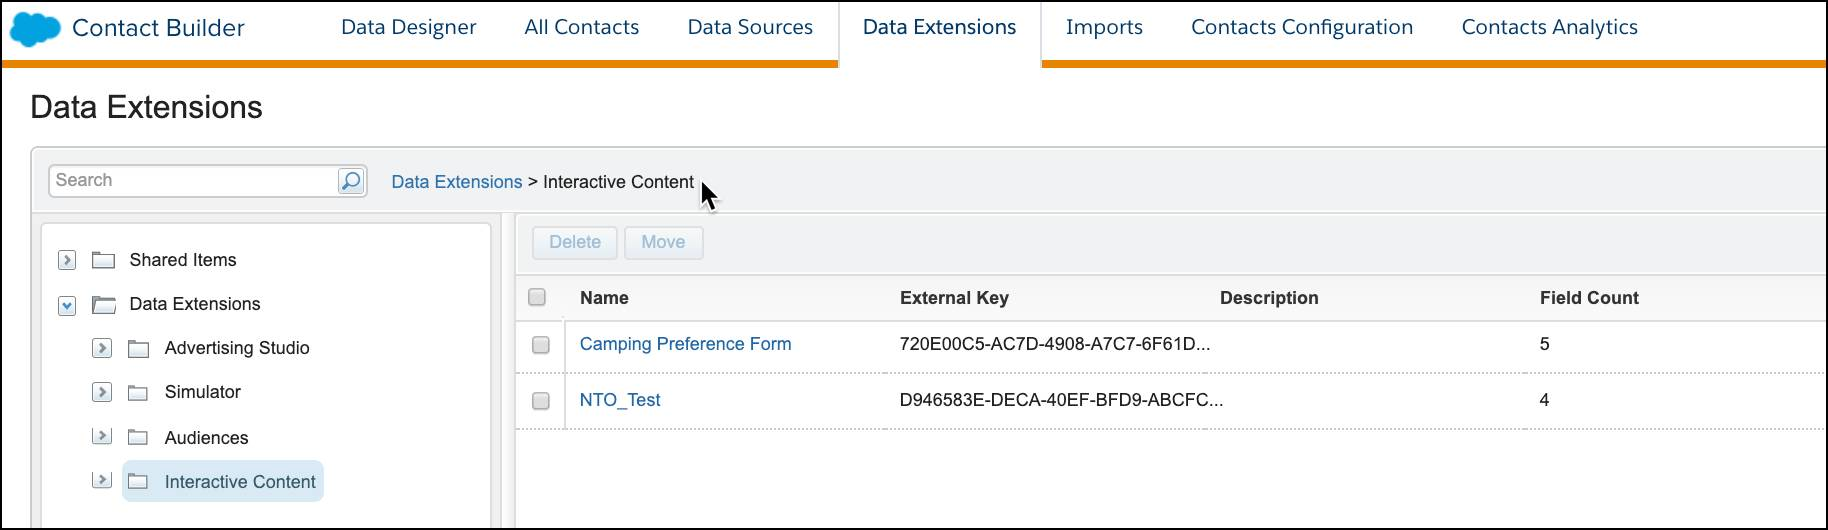 Interactive Content data extension files shown in the Data Extensions folder in Contact Builder.